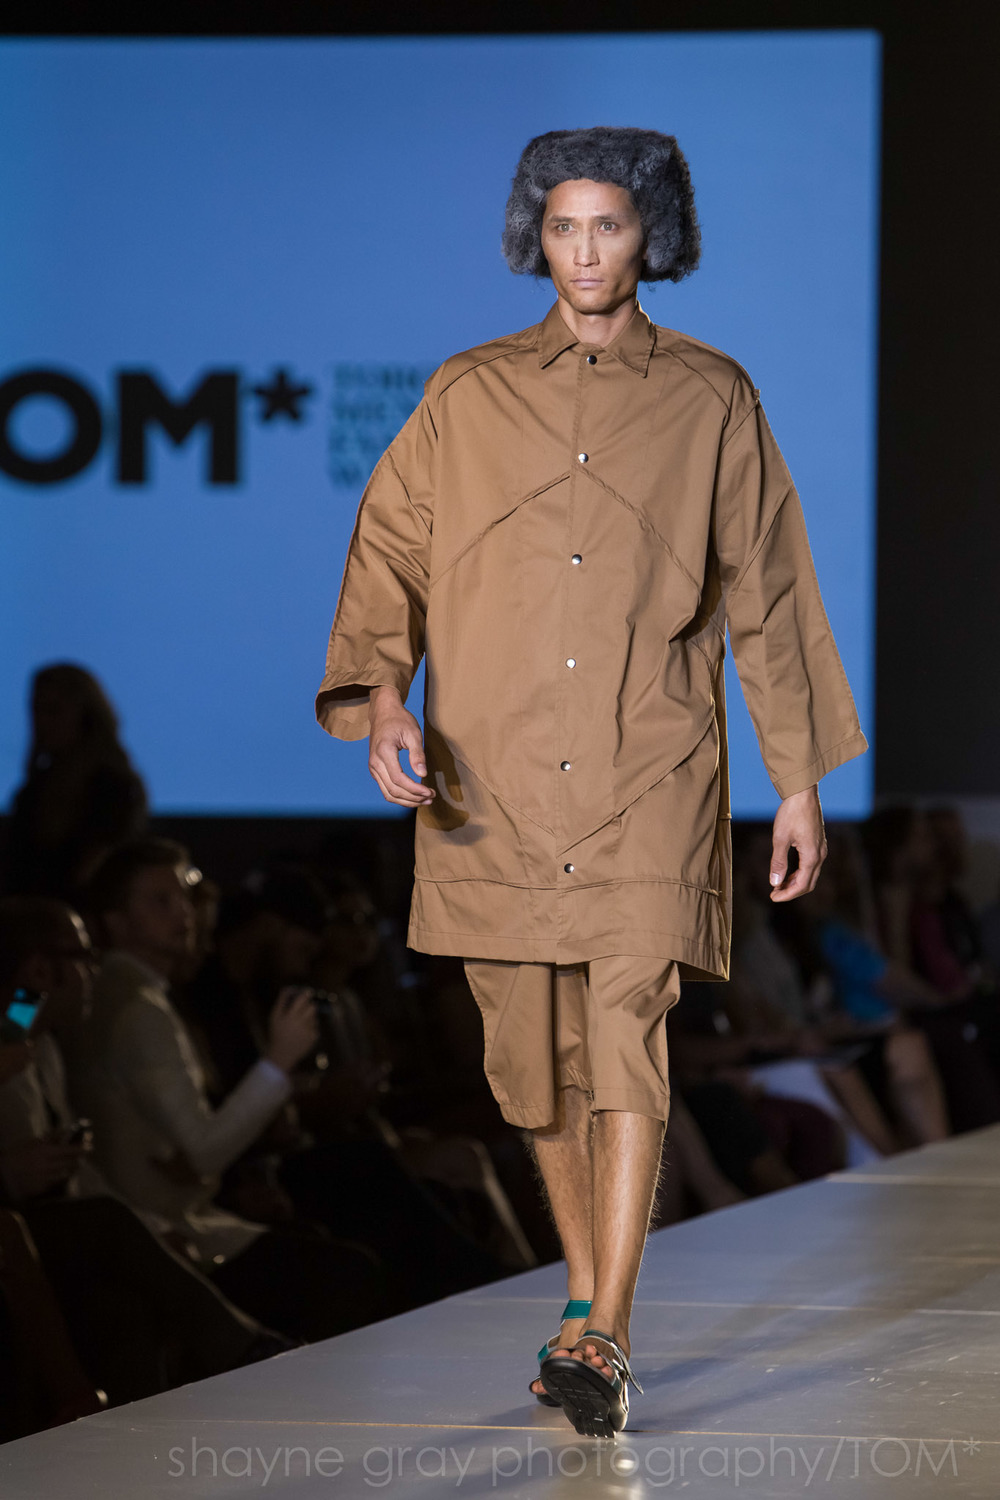 Shayne-Gray-Toronto-men's-fashion_week-TOM-jose-duran-7734.jpg